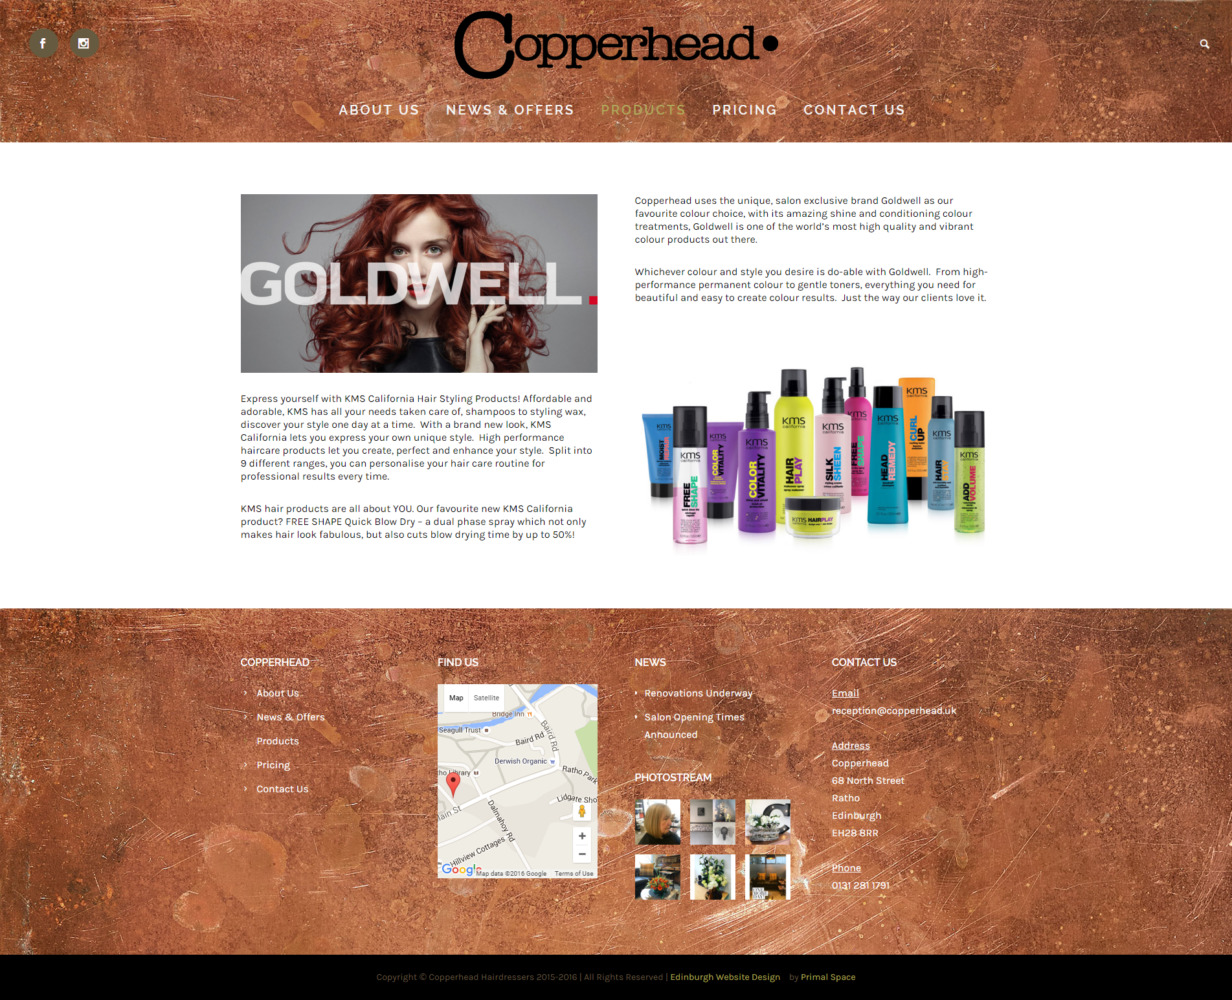 Copperhead-Hairdressers-Products-Page-Full-Width-and-Height